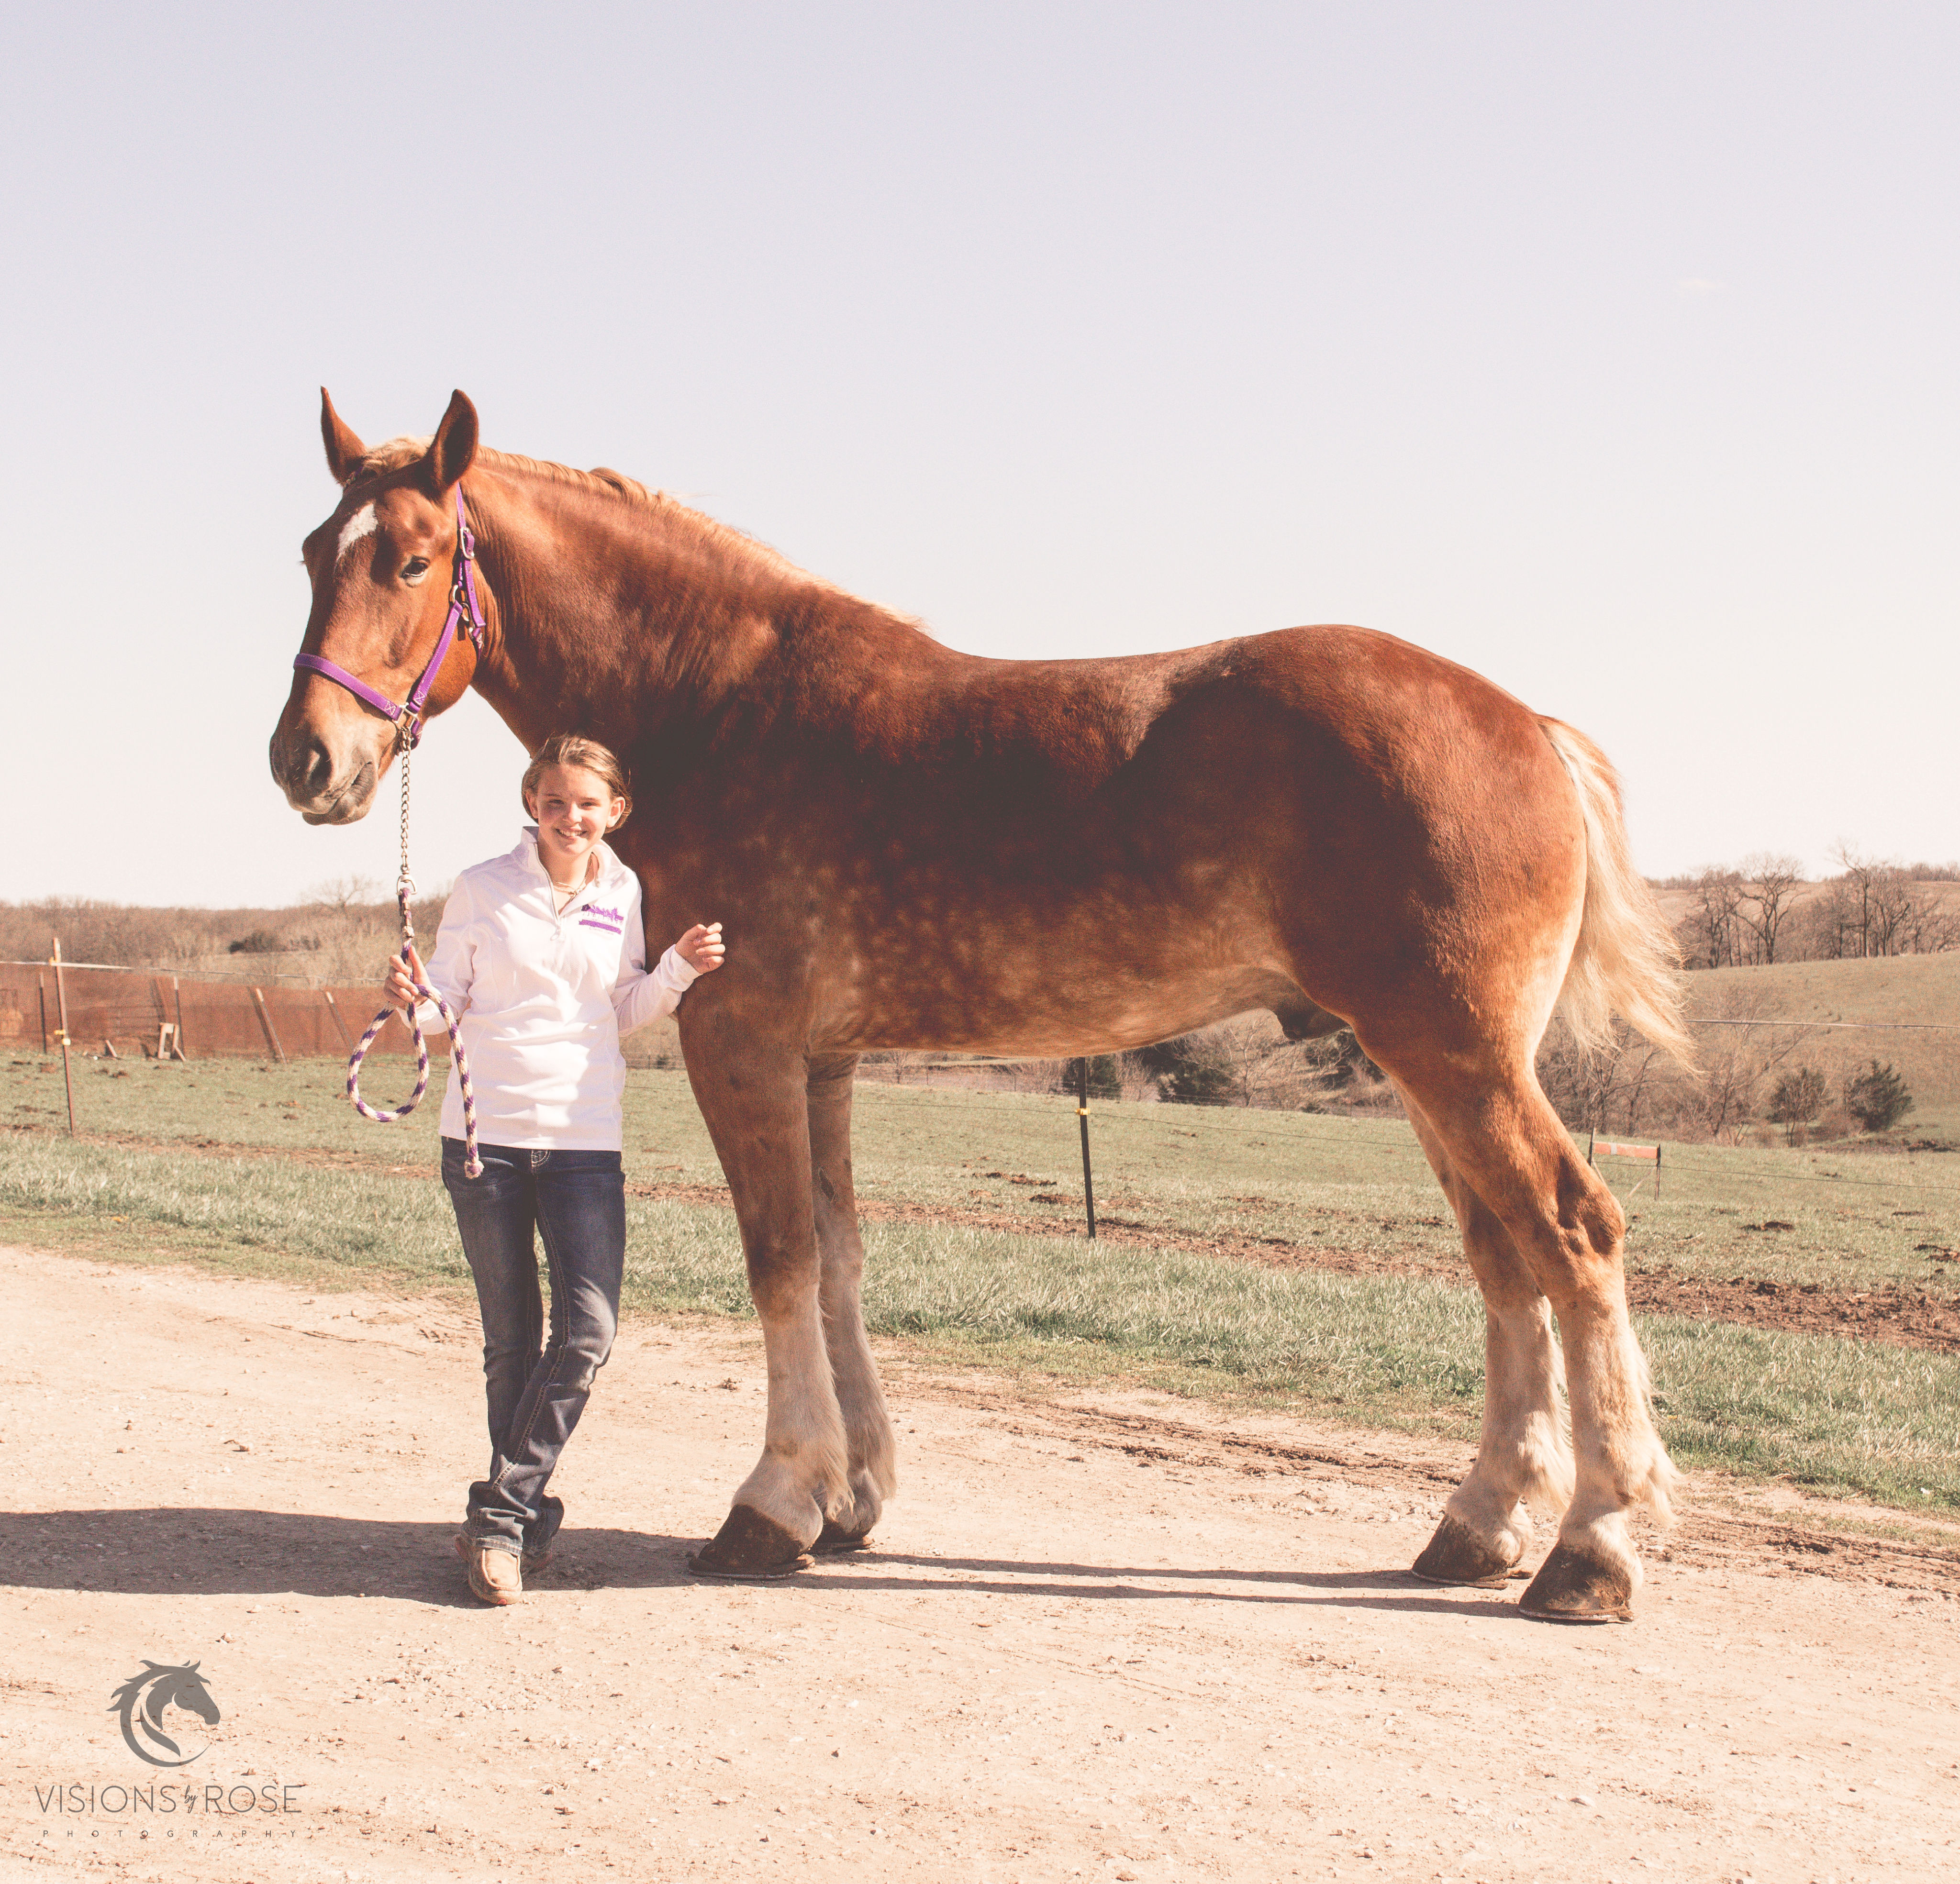 Hailey with horse wm 1